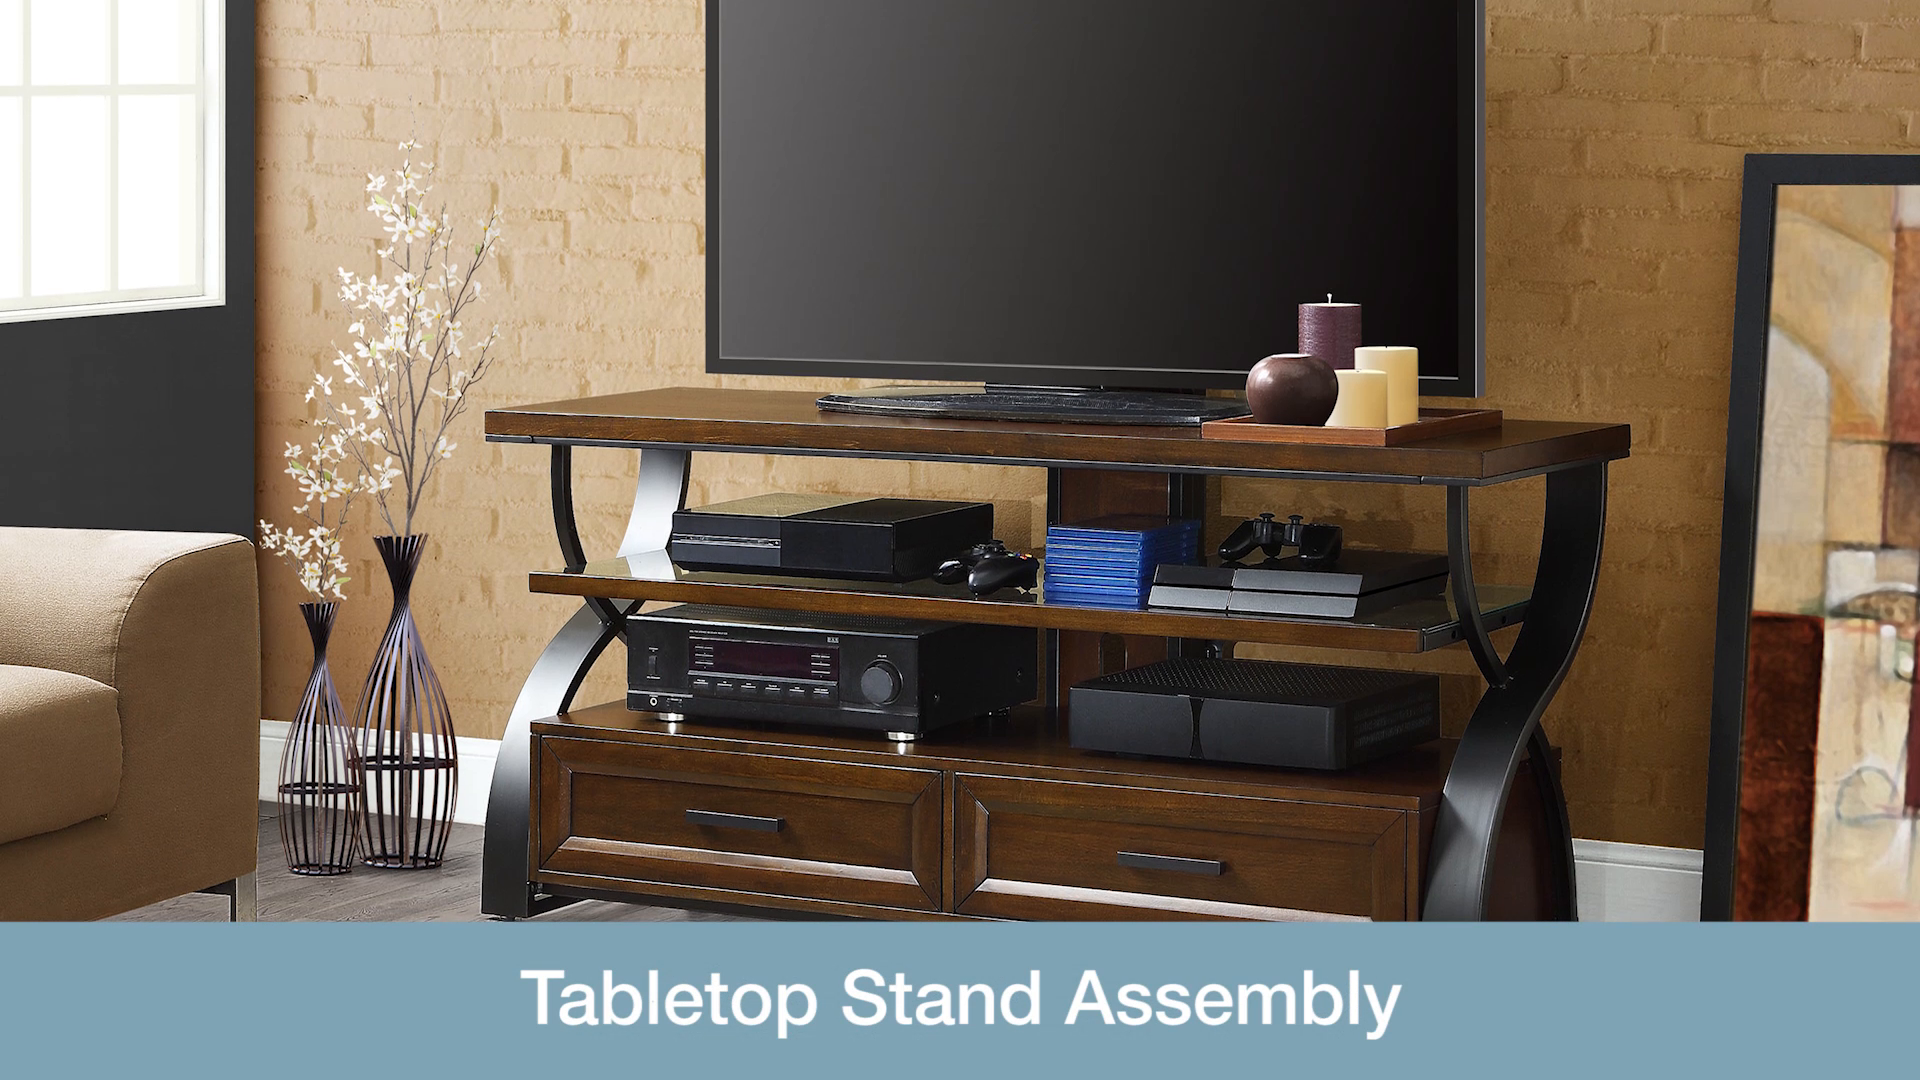 Bayside Furnishings Serra 56 3 In 1 Tv Stand Video Guides